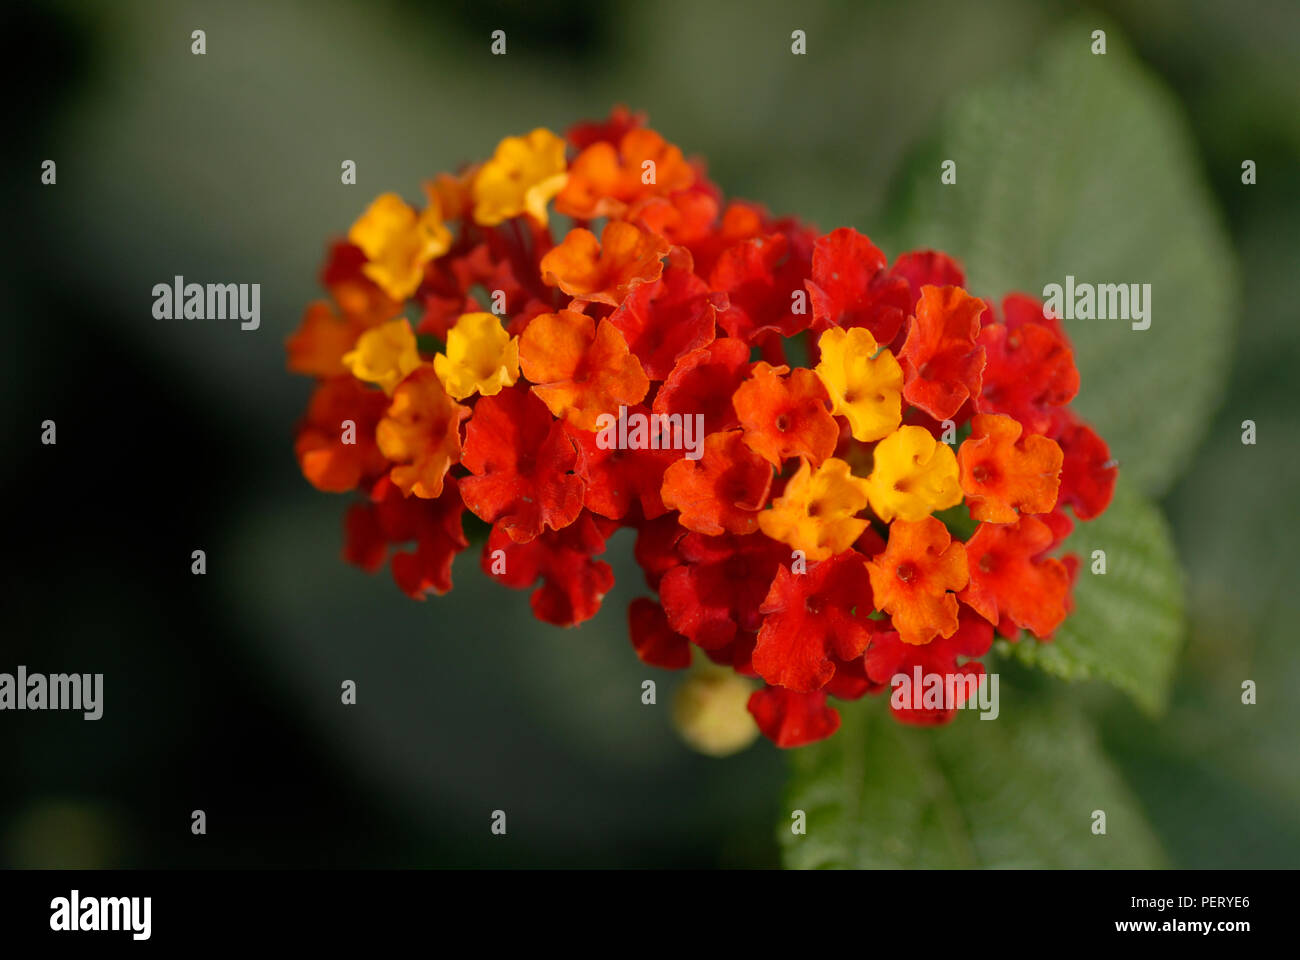 Two clusters of Lantana camara flowers with leaves in the background Stock Photo